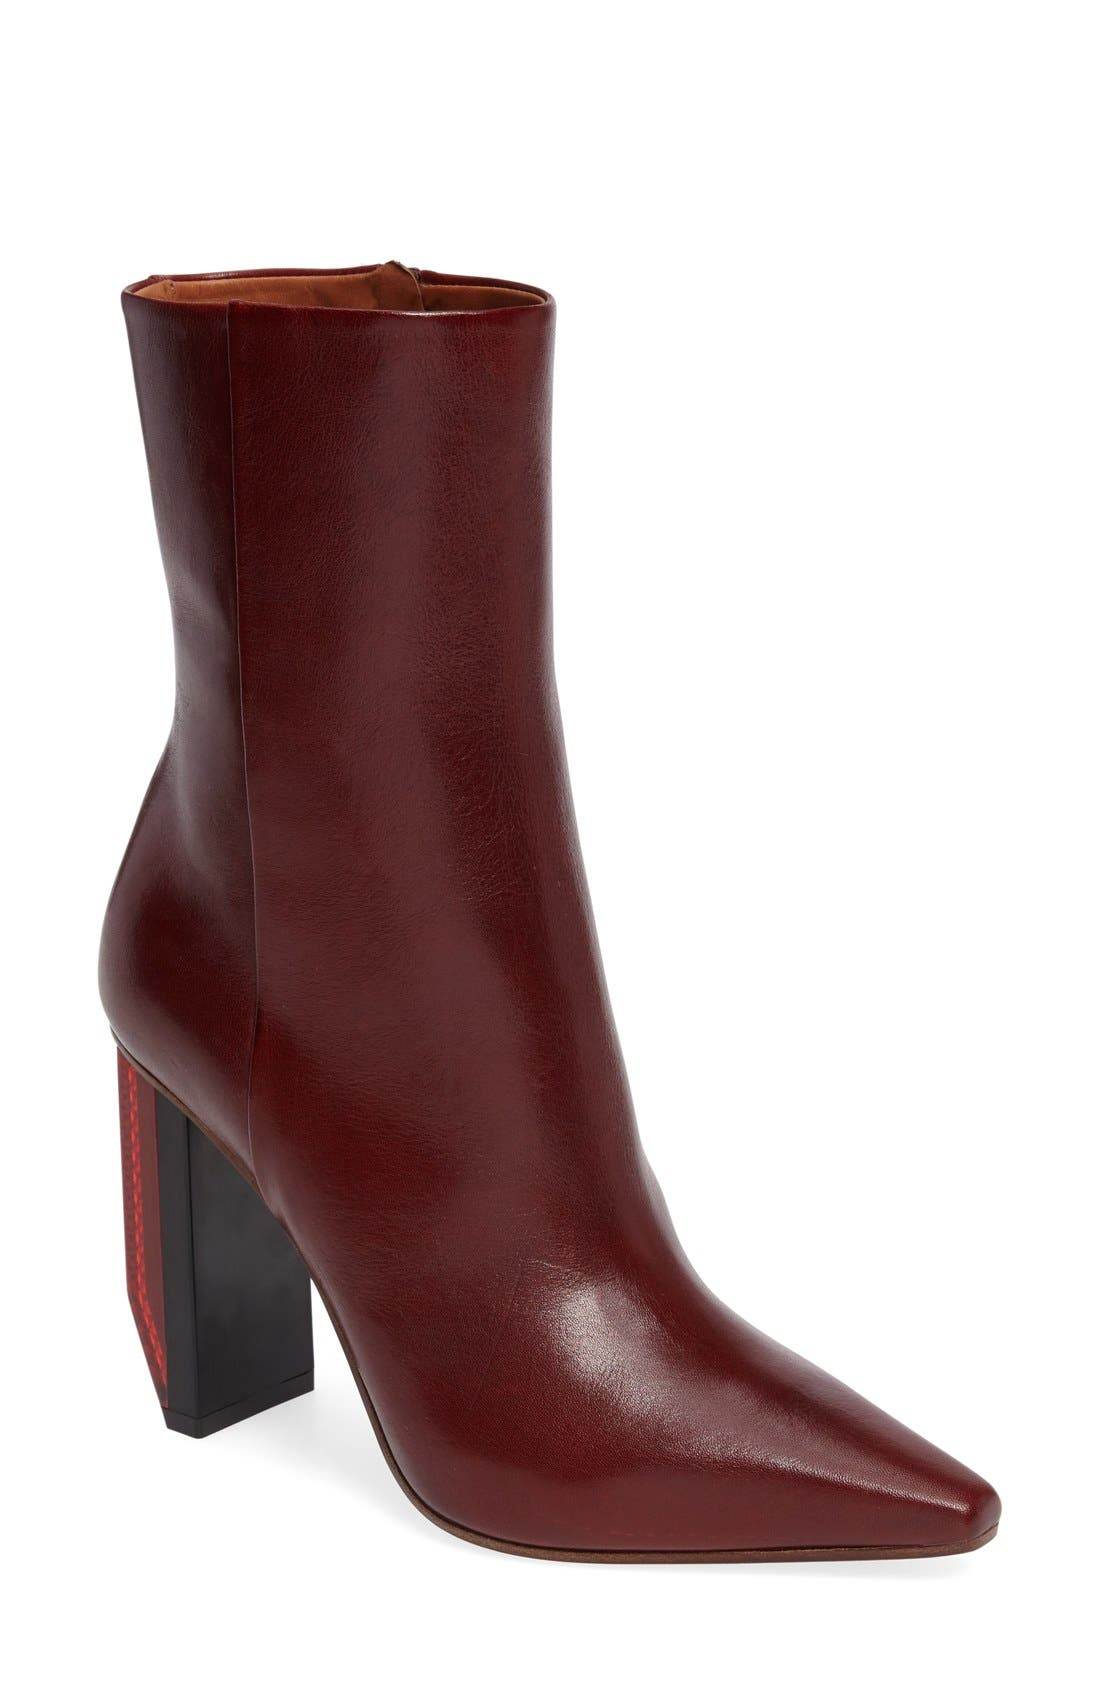 Reflector Heel Ankle Boot,                             Main thumbnail 1, color,                             Burgundy/ Red Heel